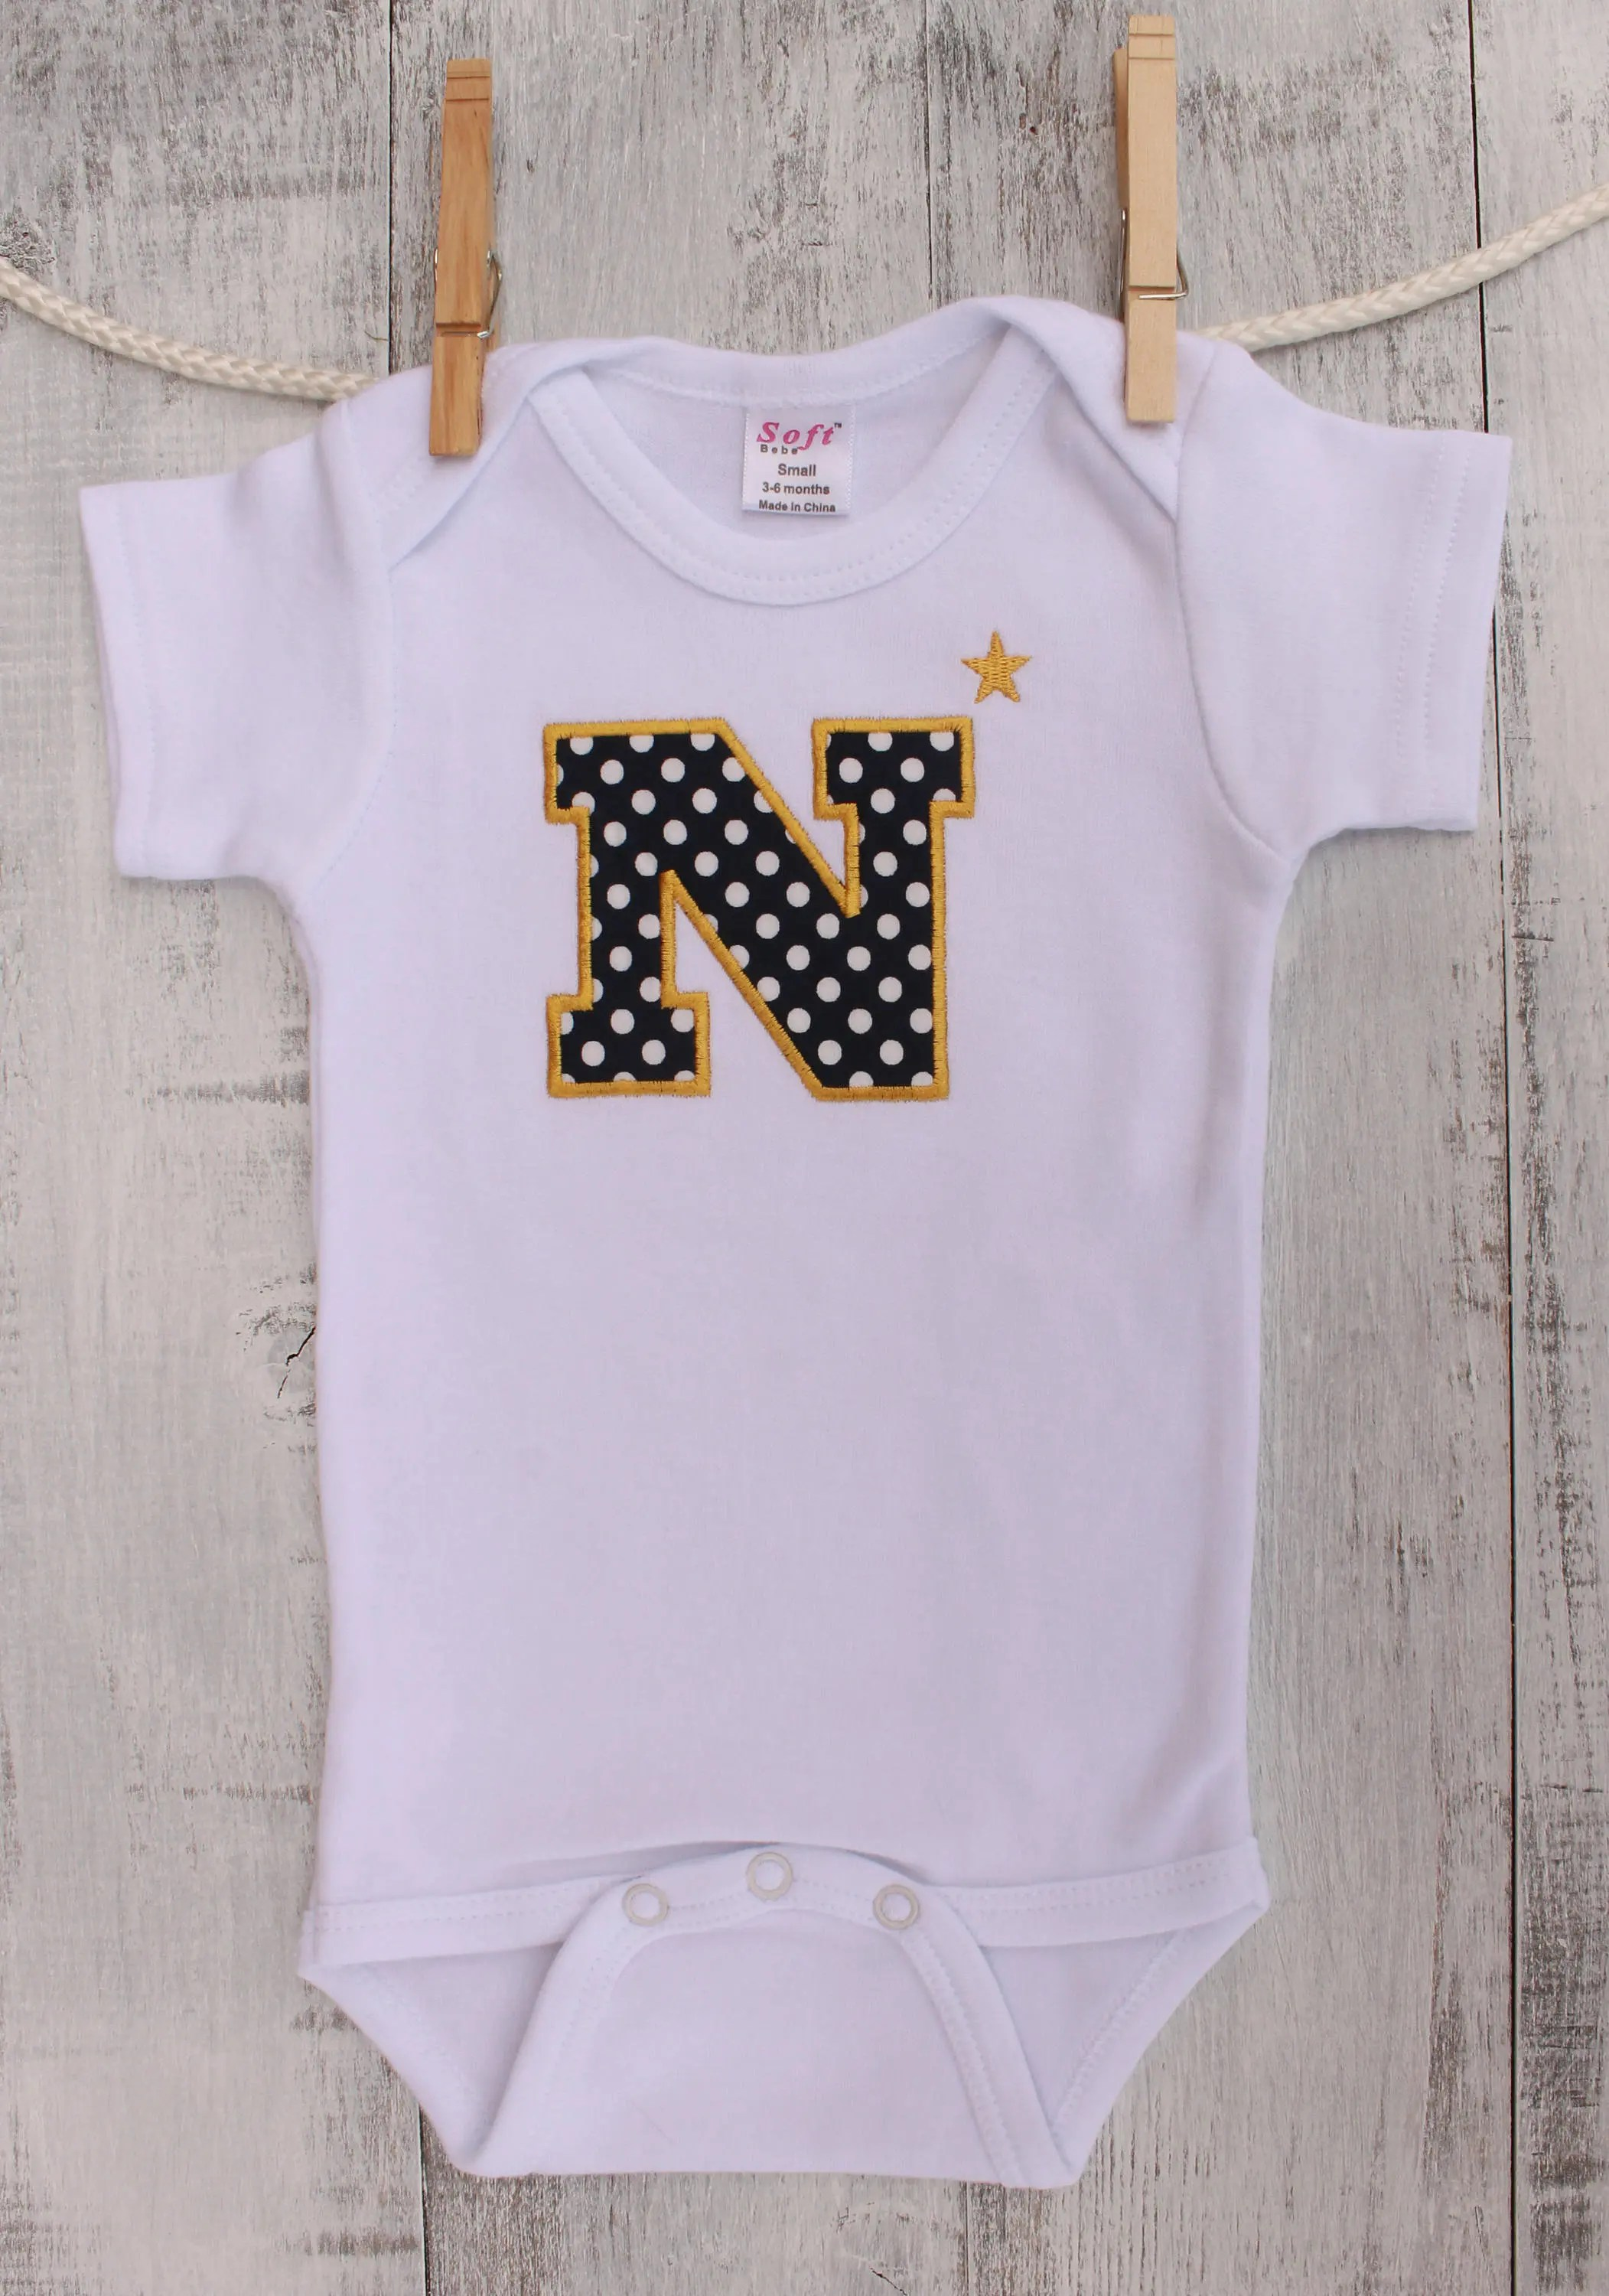 Cheap Baby Clothes Au Go Navy Baby Clothes Naval Academy Bodysuit Usna